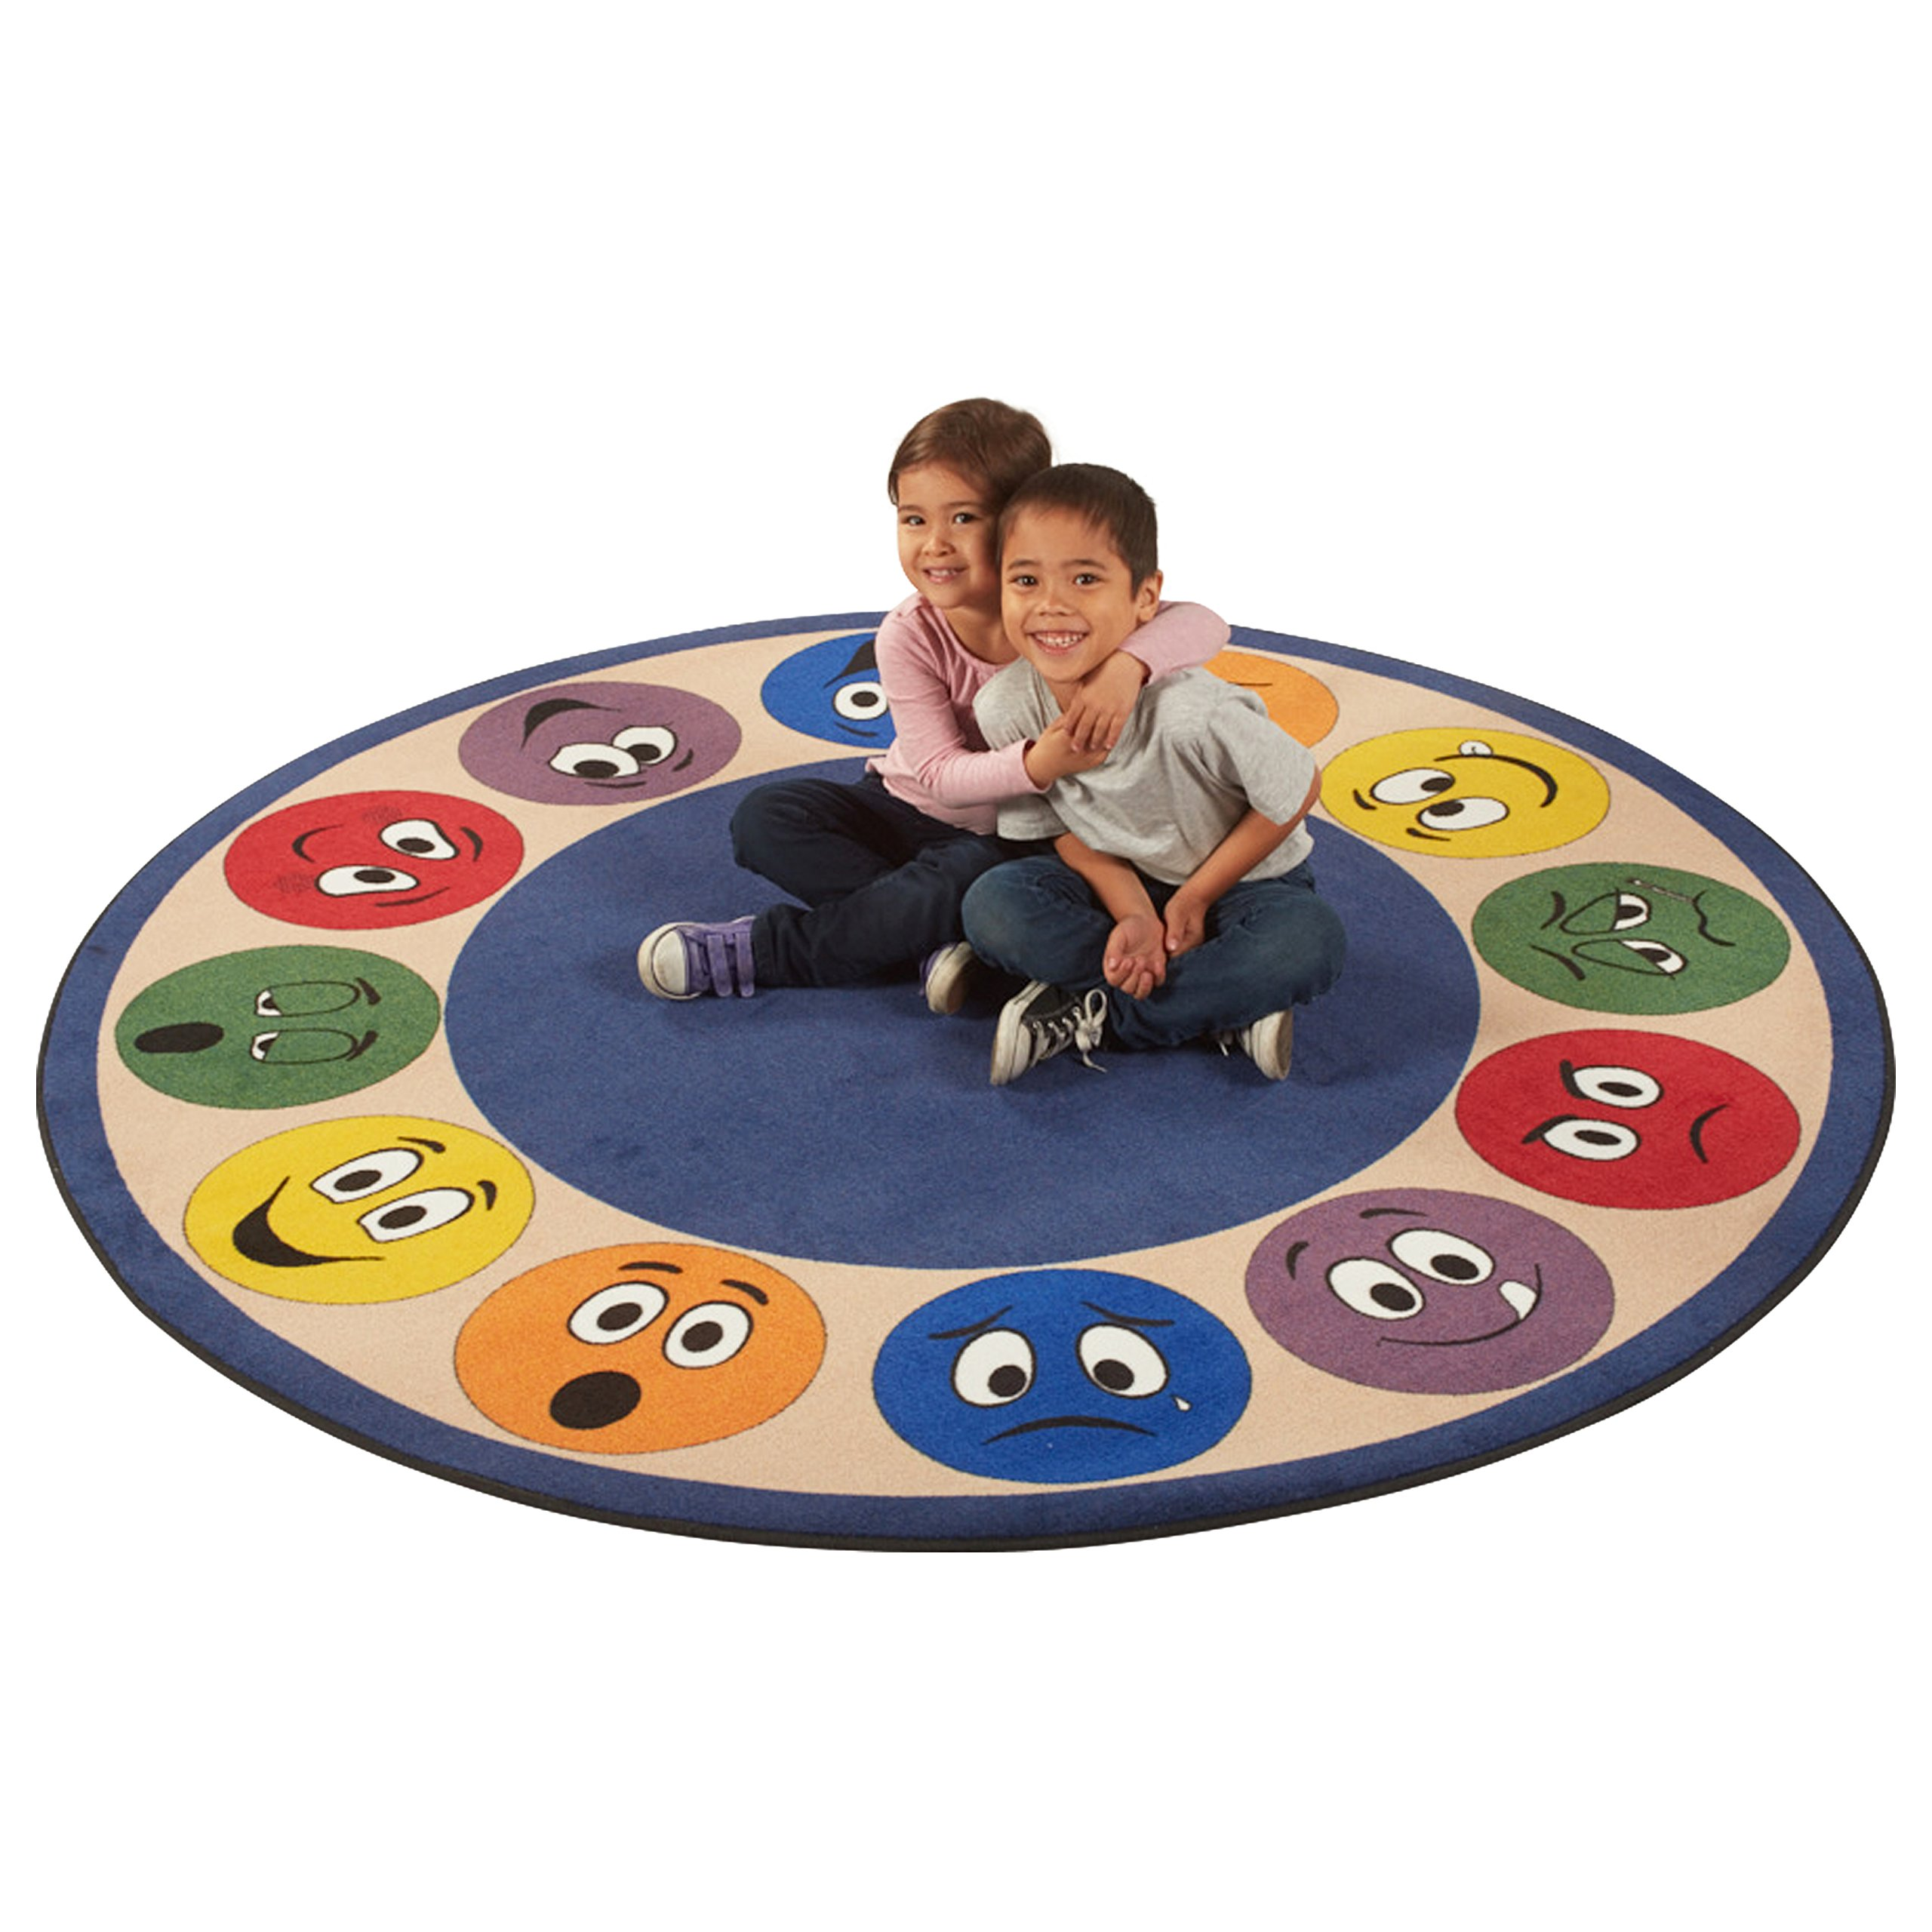 ECR4Kids Expression Educational Circle Area Rug for Children, Kids' Carpet for School/Classroom/Home, 6-Feet Round, Assorted Colors